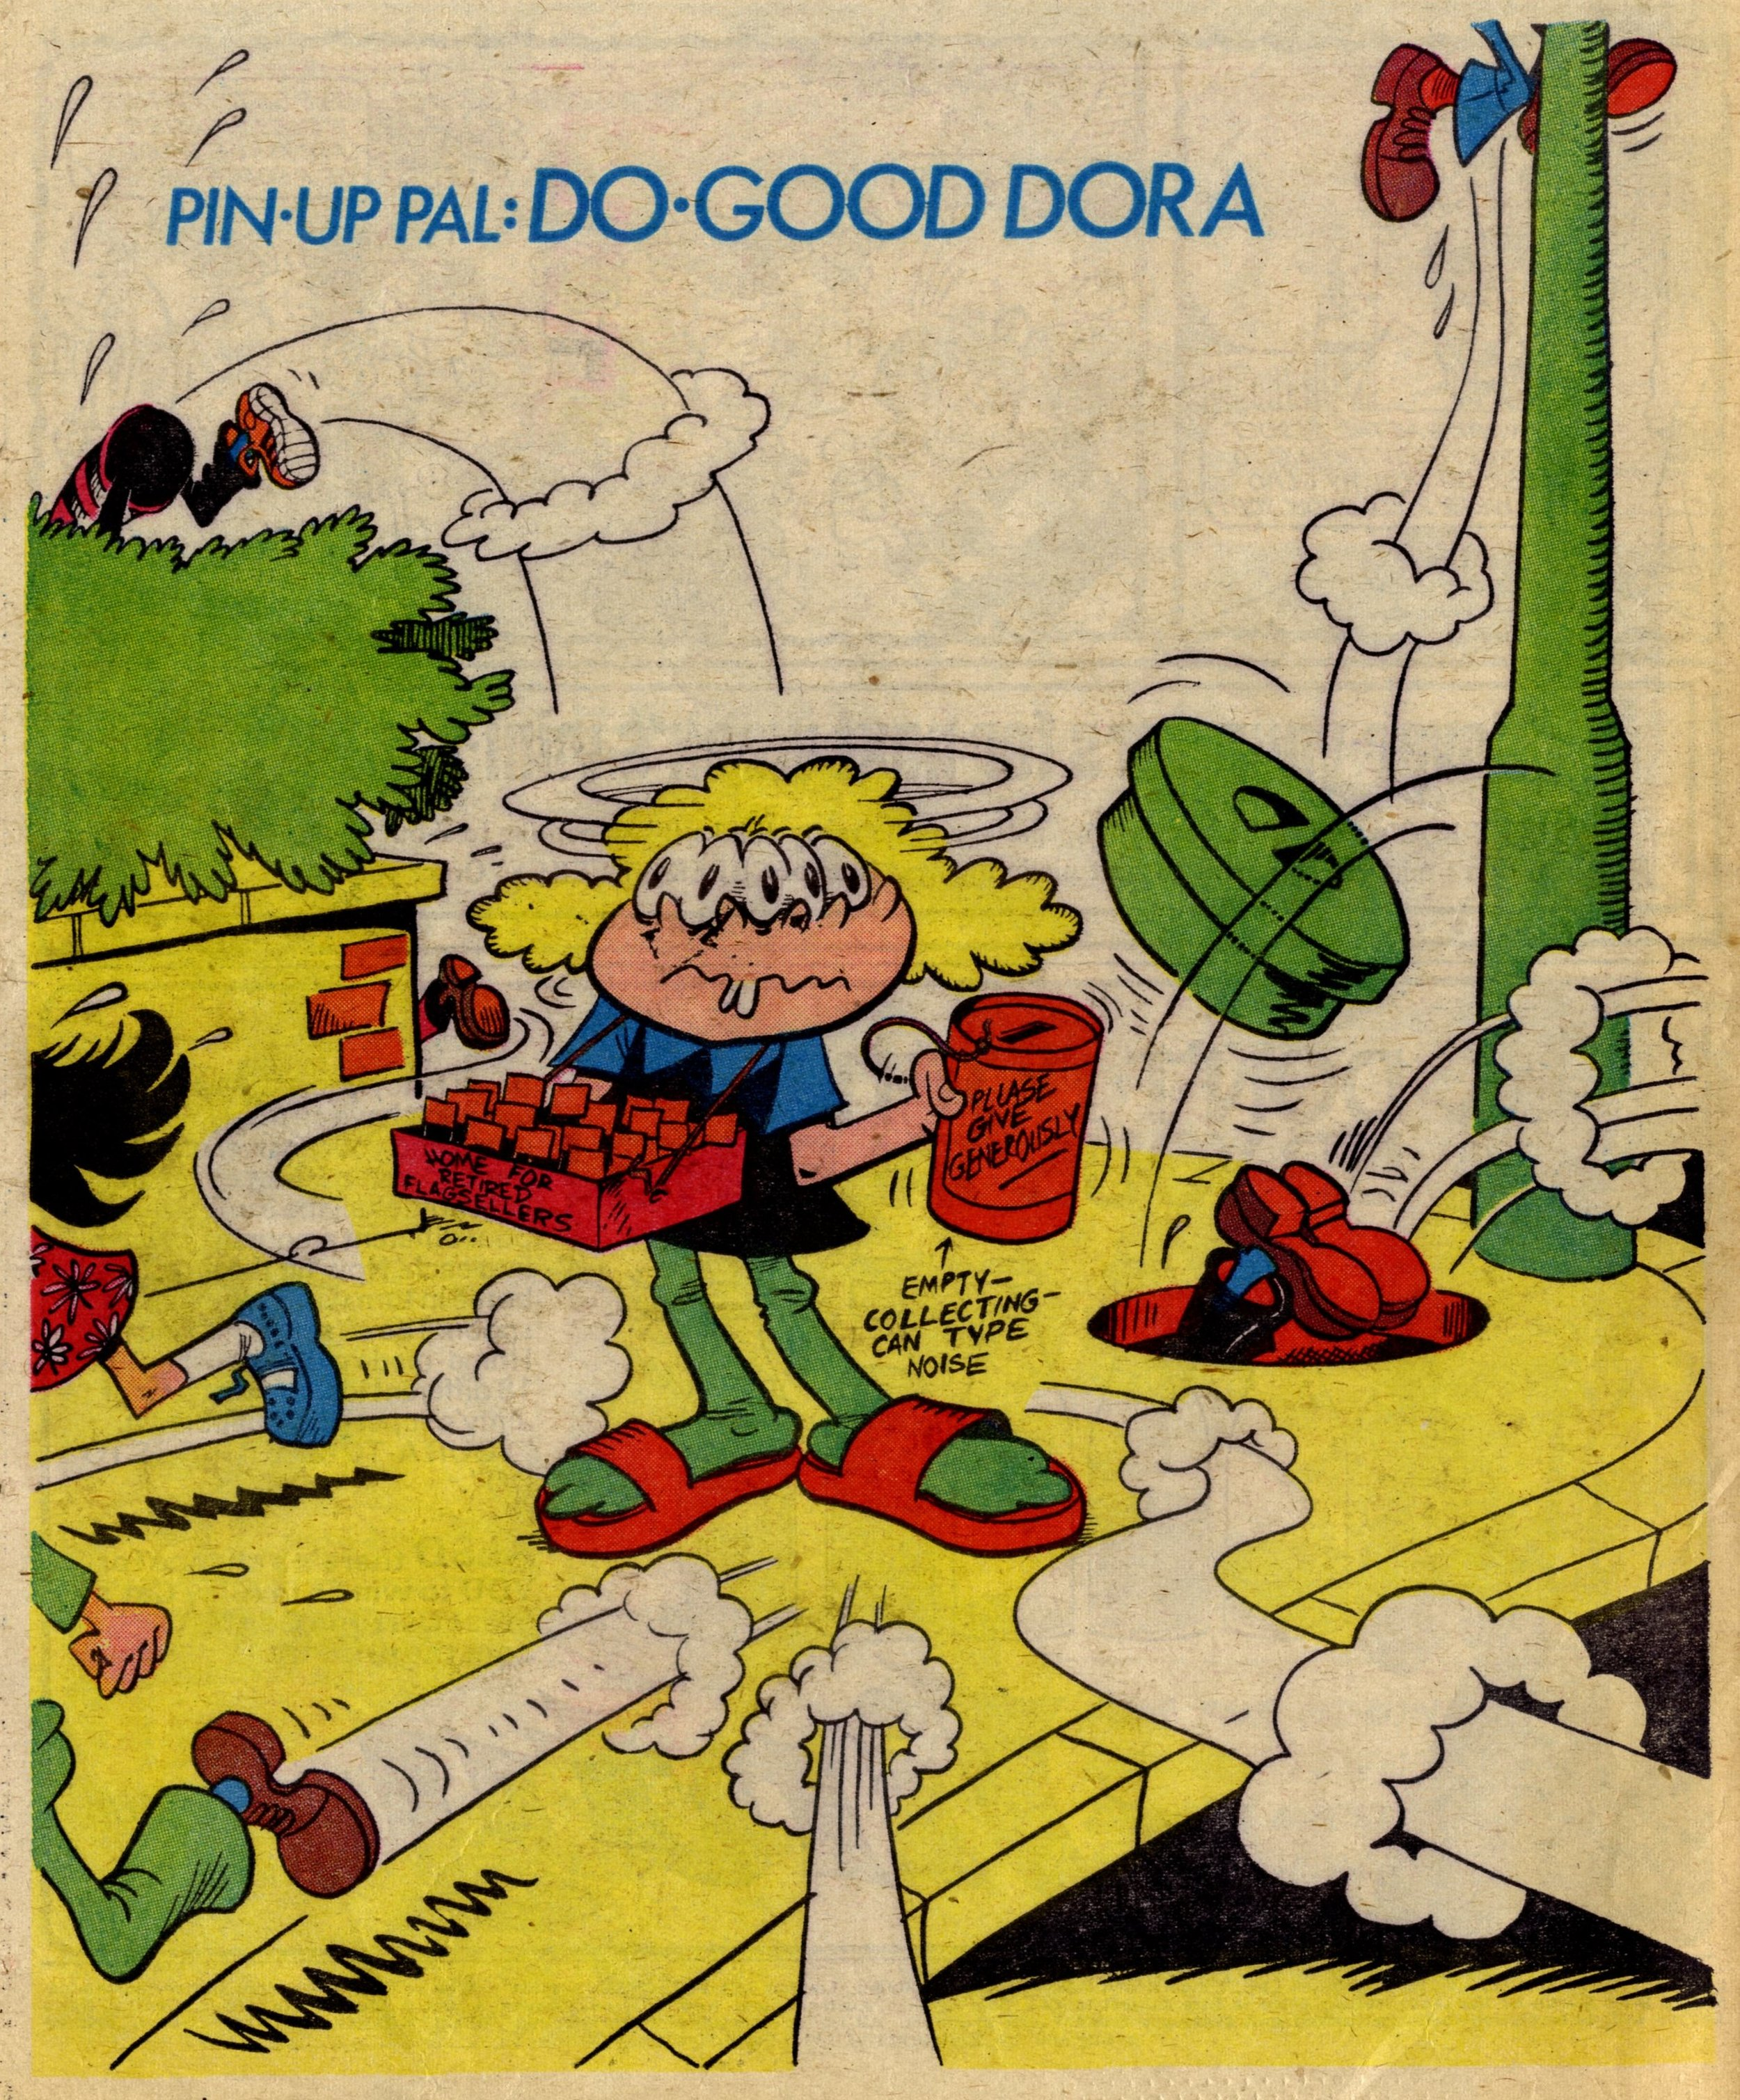 Pin-up Pal: Do-good Dora (artist Frank McDiarmid), 10 June 1978